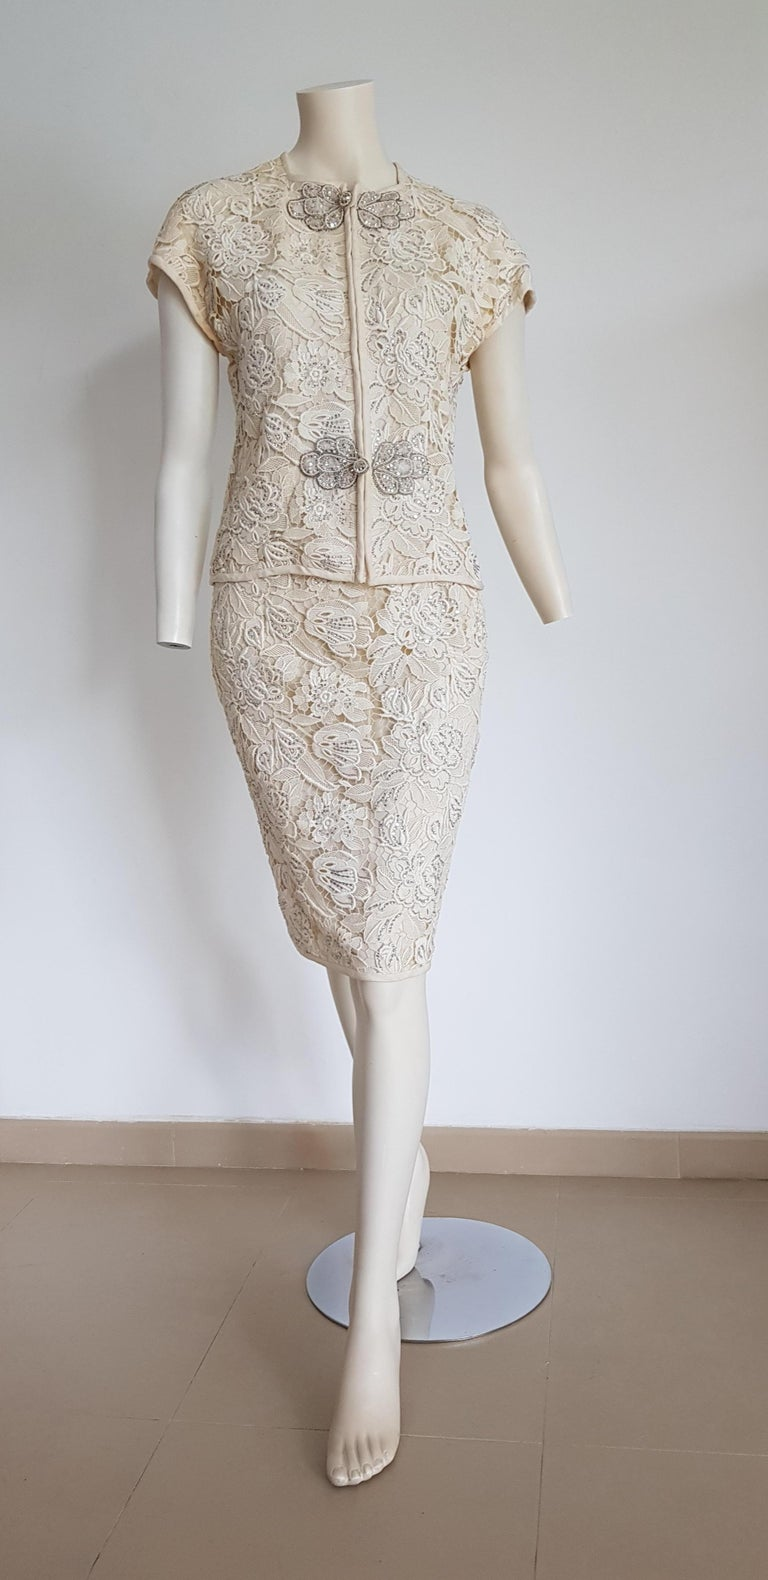 VALENTINO Haute Couture swarovski diamonds hand embroidered lace beige silk suit - Unworn   SIZE: equivalent to about Small / Medium, please review approx measurements as follows in cm.  JACKET: lenght 56, chest underarm to underarm 54, bust